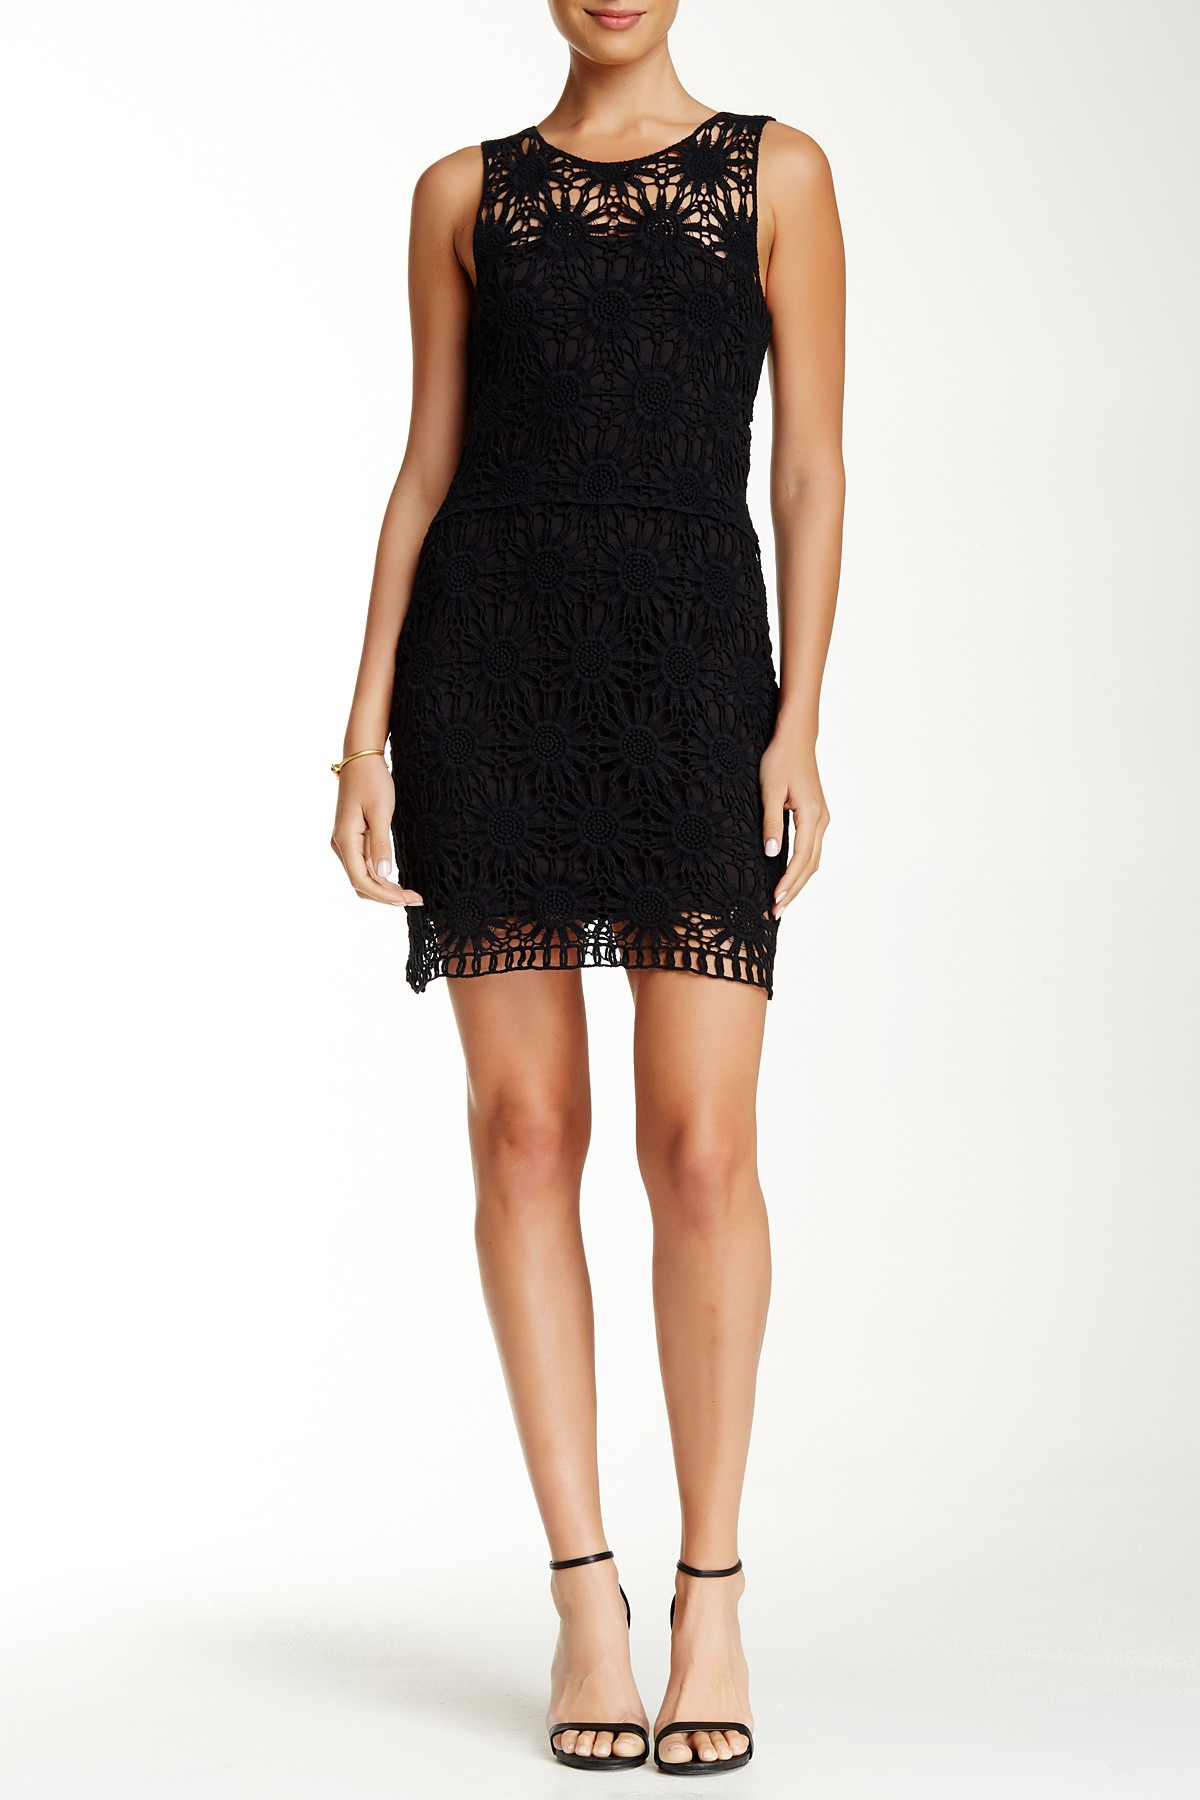 Lyst Macbeth Collection Crocheted Lace Dress In Black